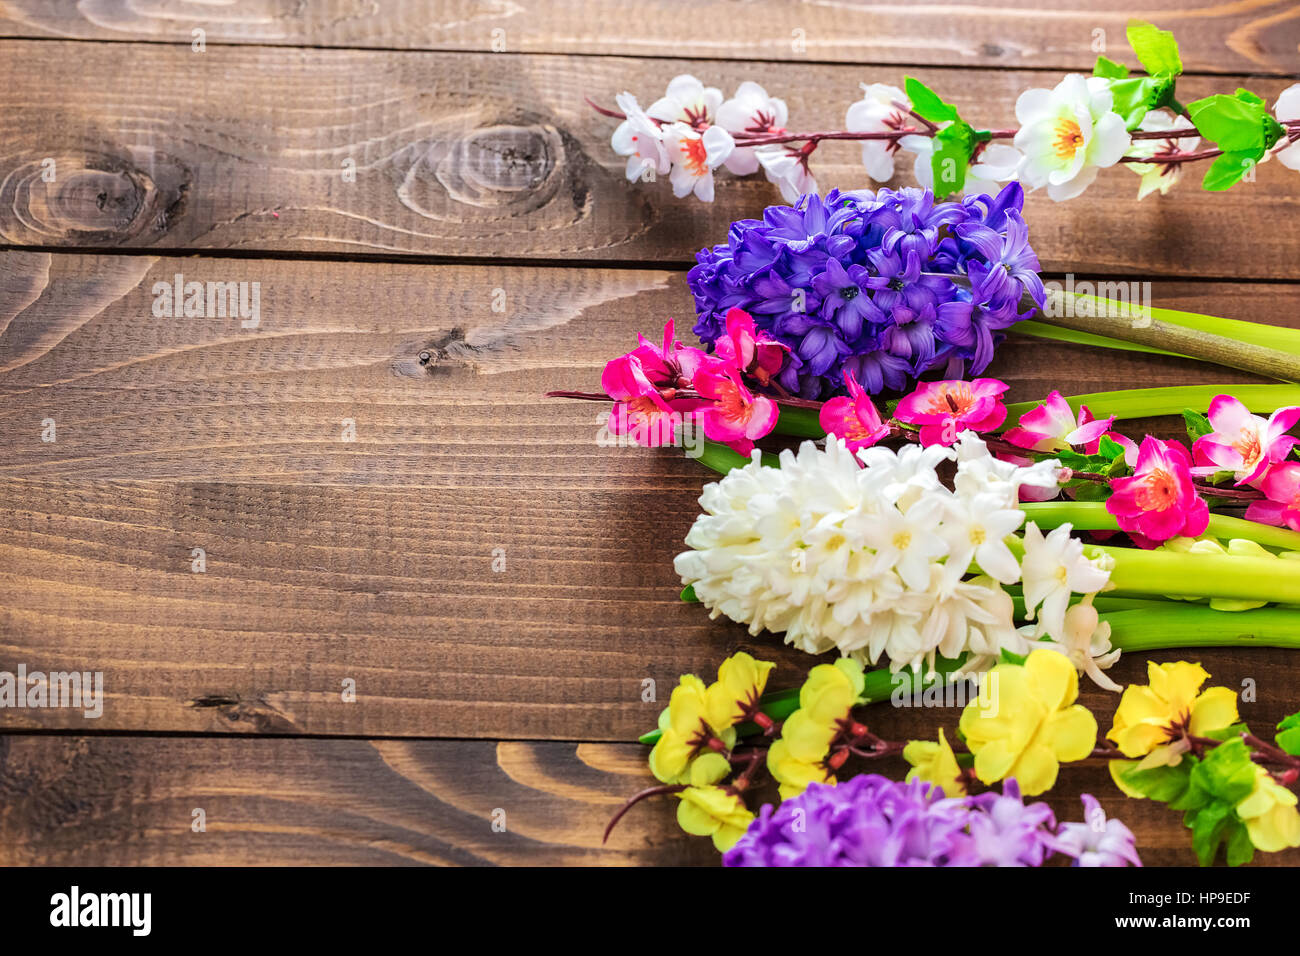 Fresh hyacinth flowers on wooden background beautiful idea for fresh hyacinth flowers on wooden background beautiful idea for greeting cards for valentines day march 8 and mothers day free space izmirmasajfo